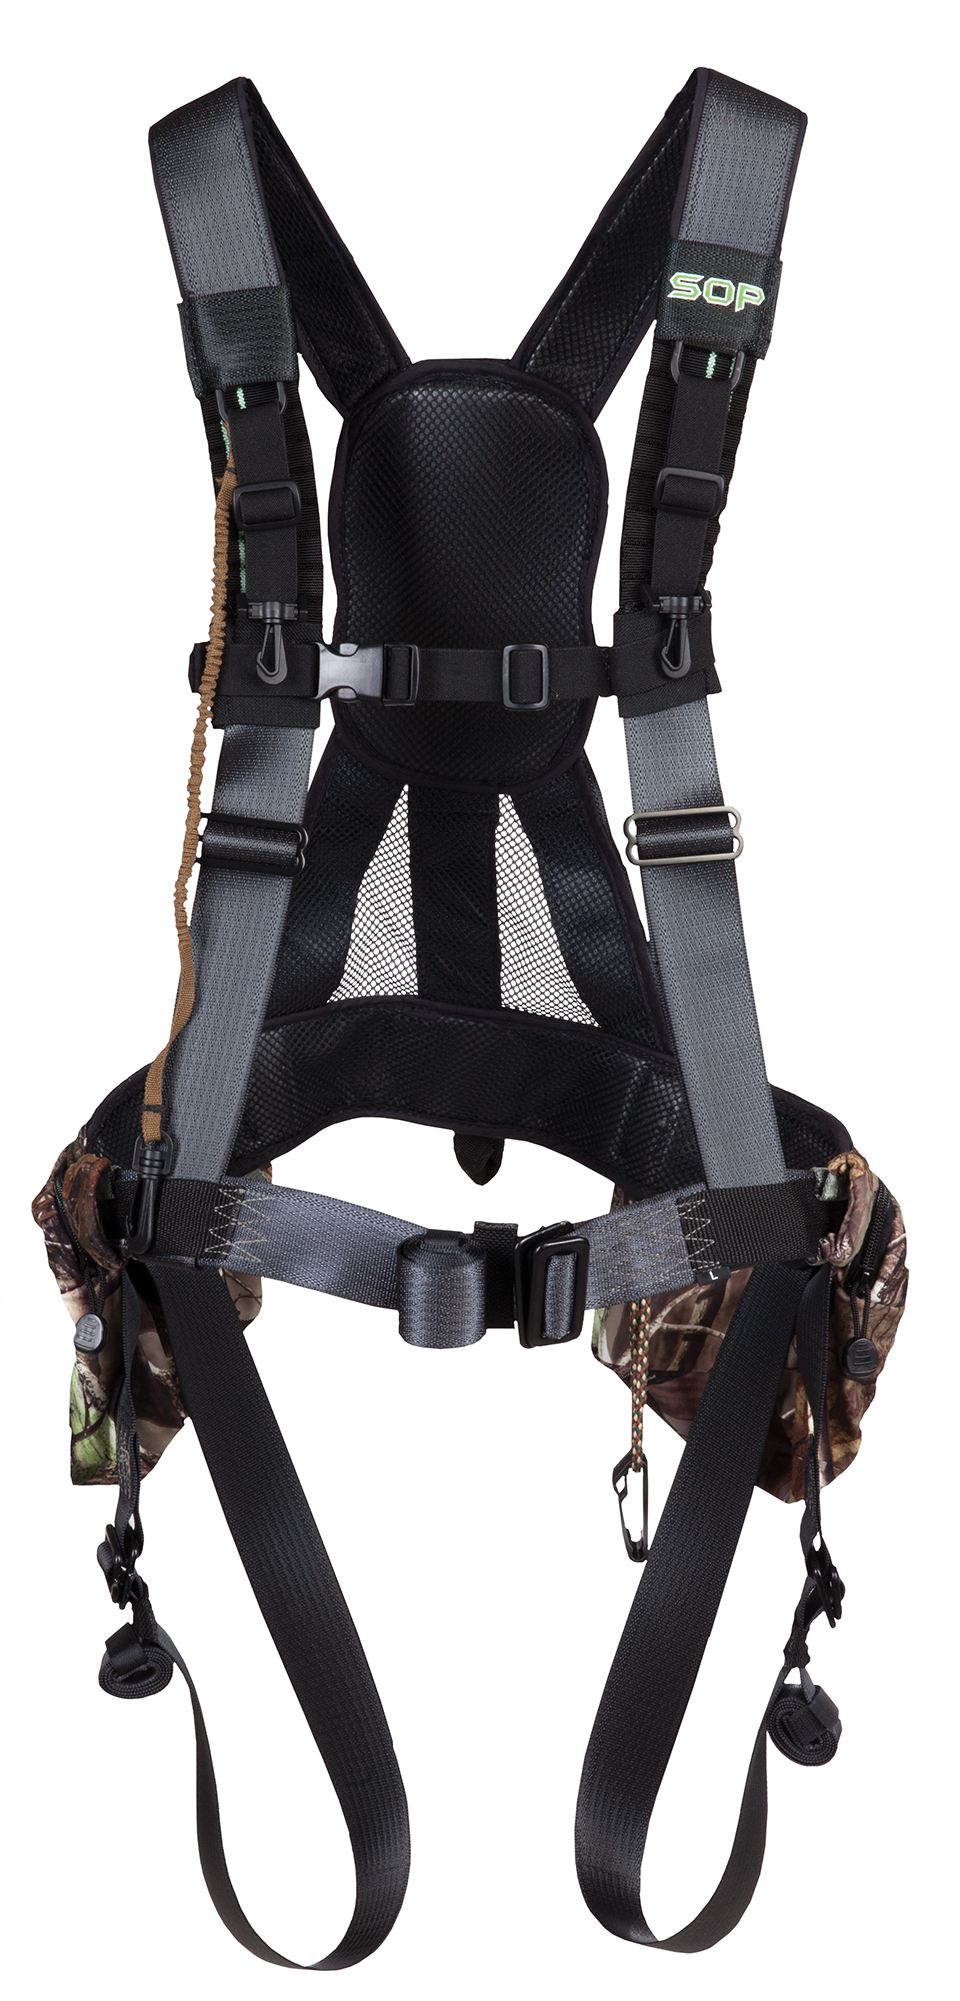 Summit S Sts Deluxe Safety Harness Offers Everything A